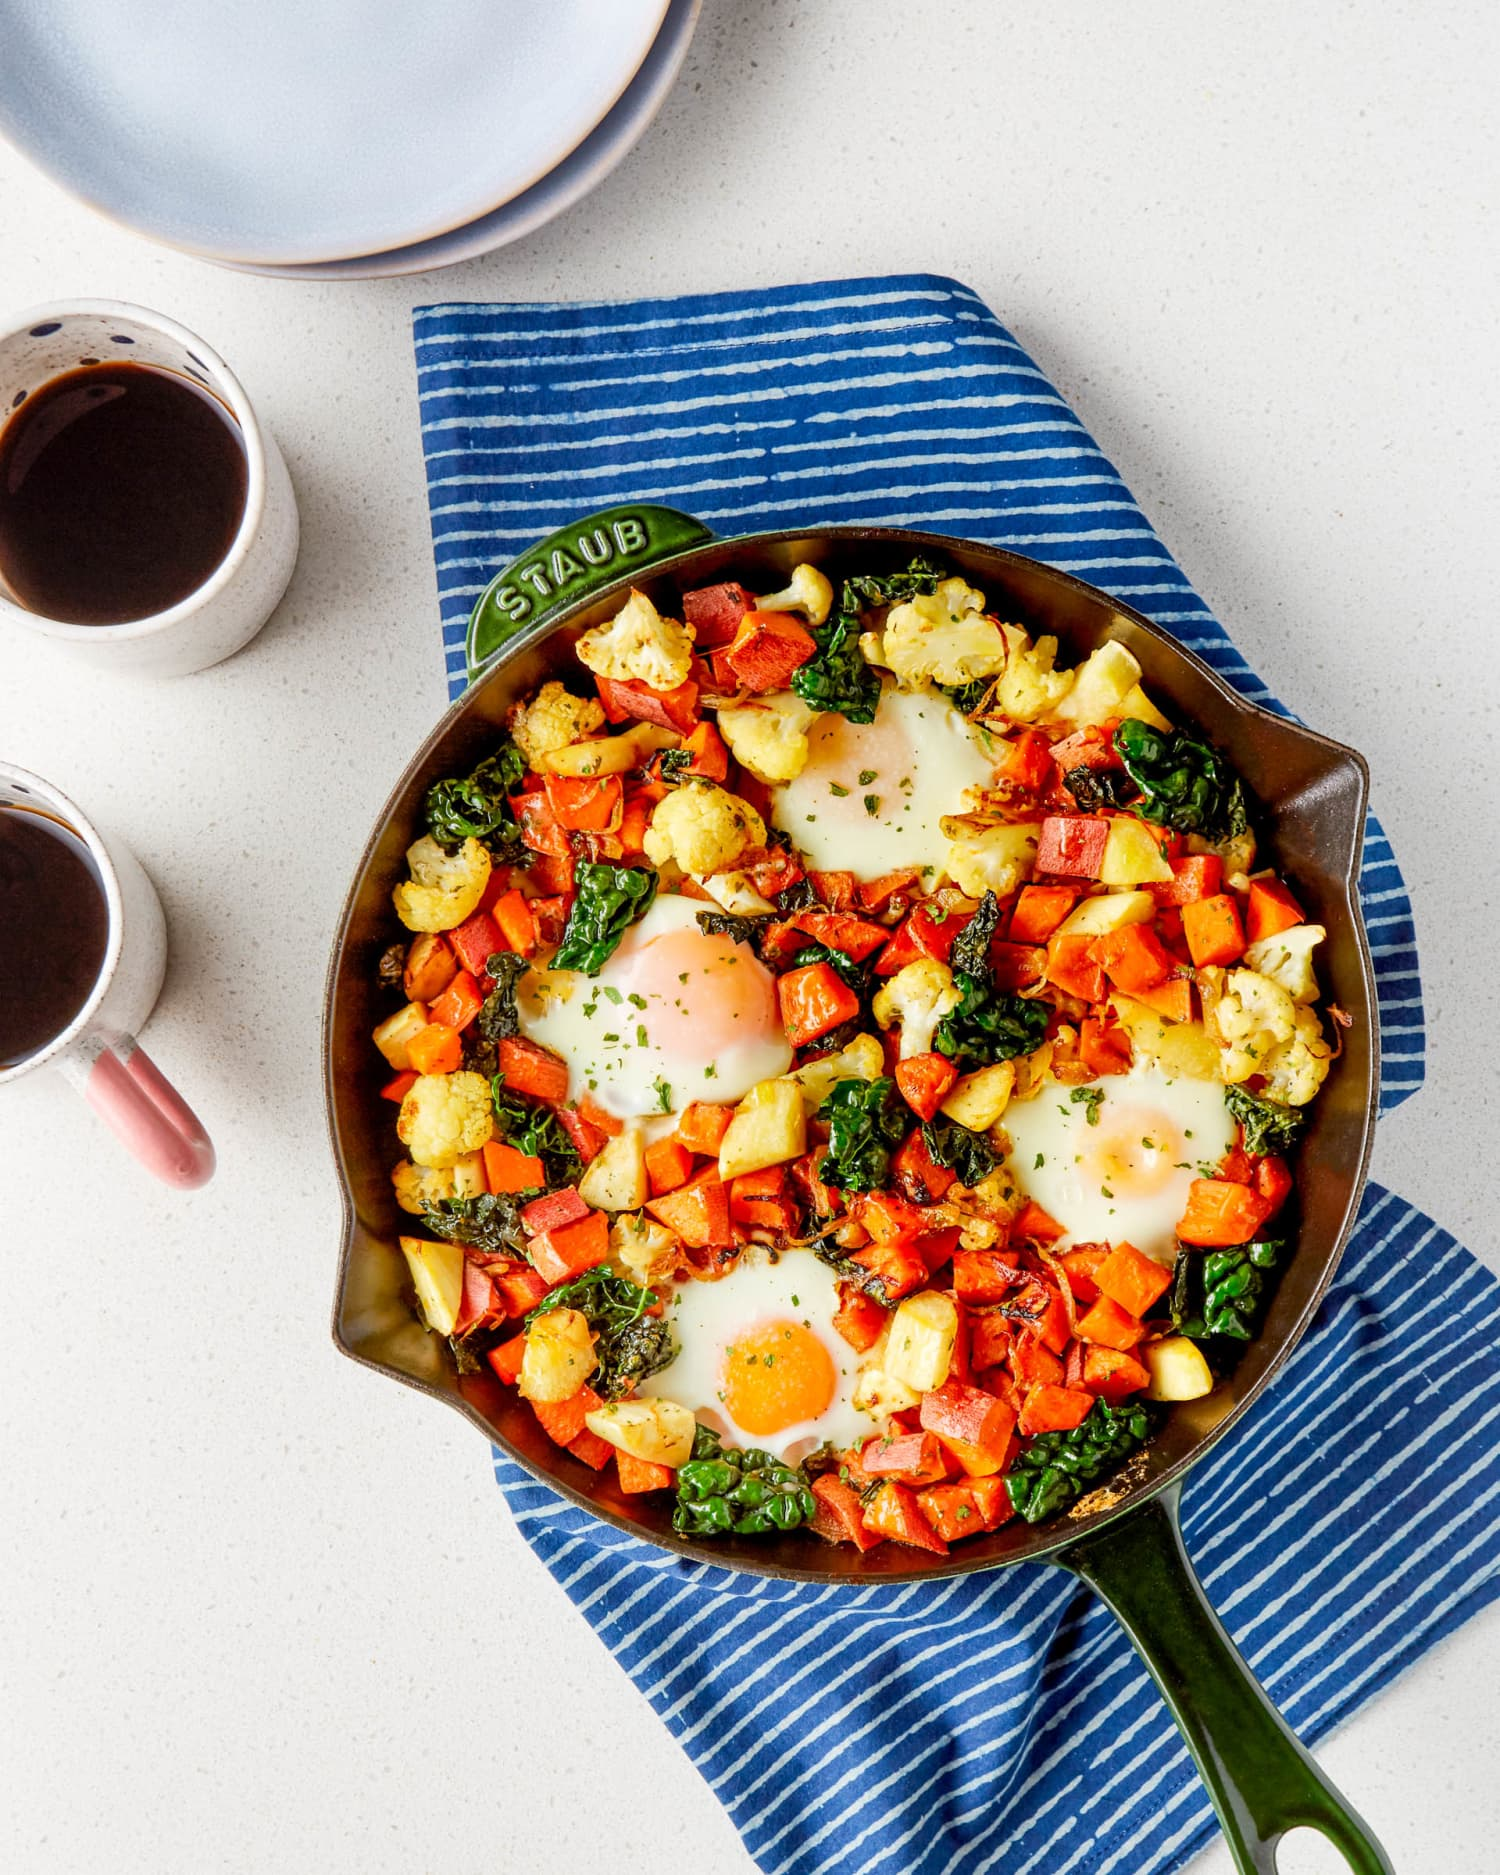 Ranch Sweet Potato Skillet with Baked Eggs Is Hearty, Healthy, and Filling